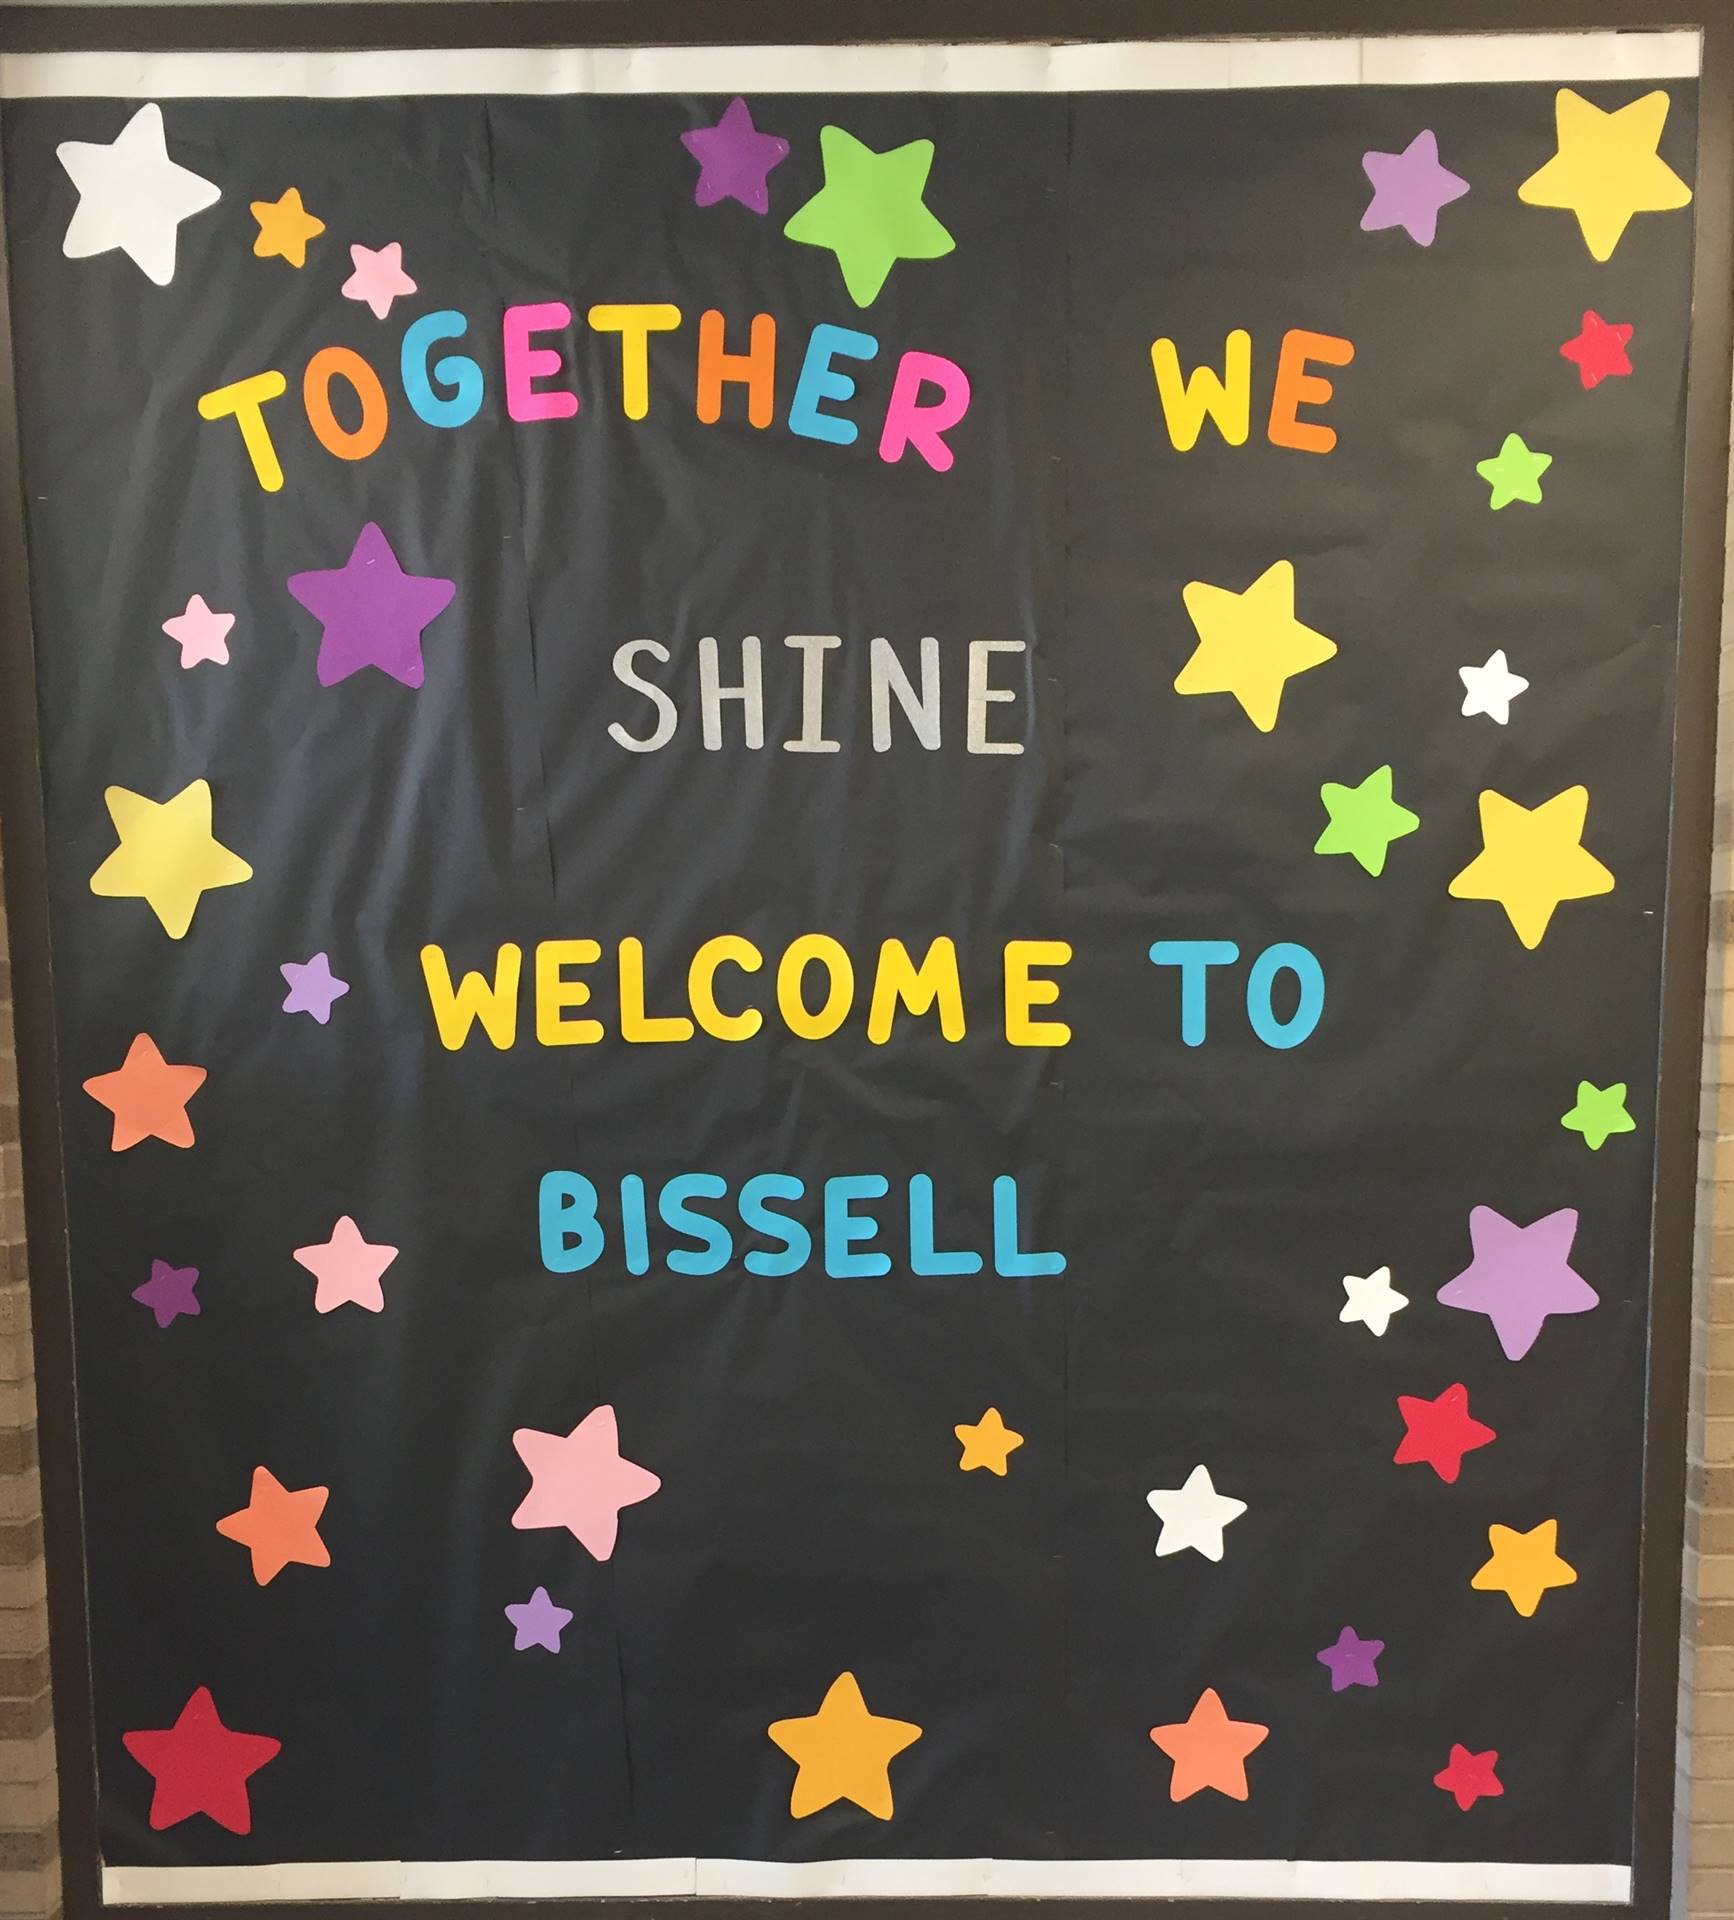 Together we Shine! Welcome to Bissell